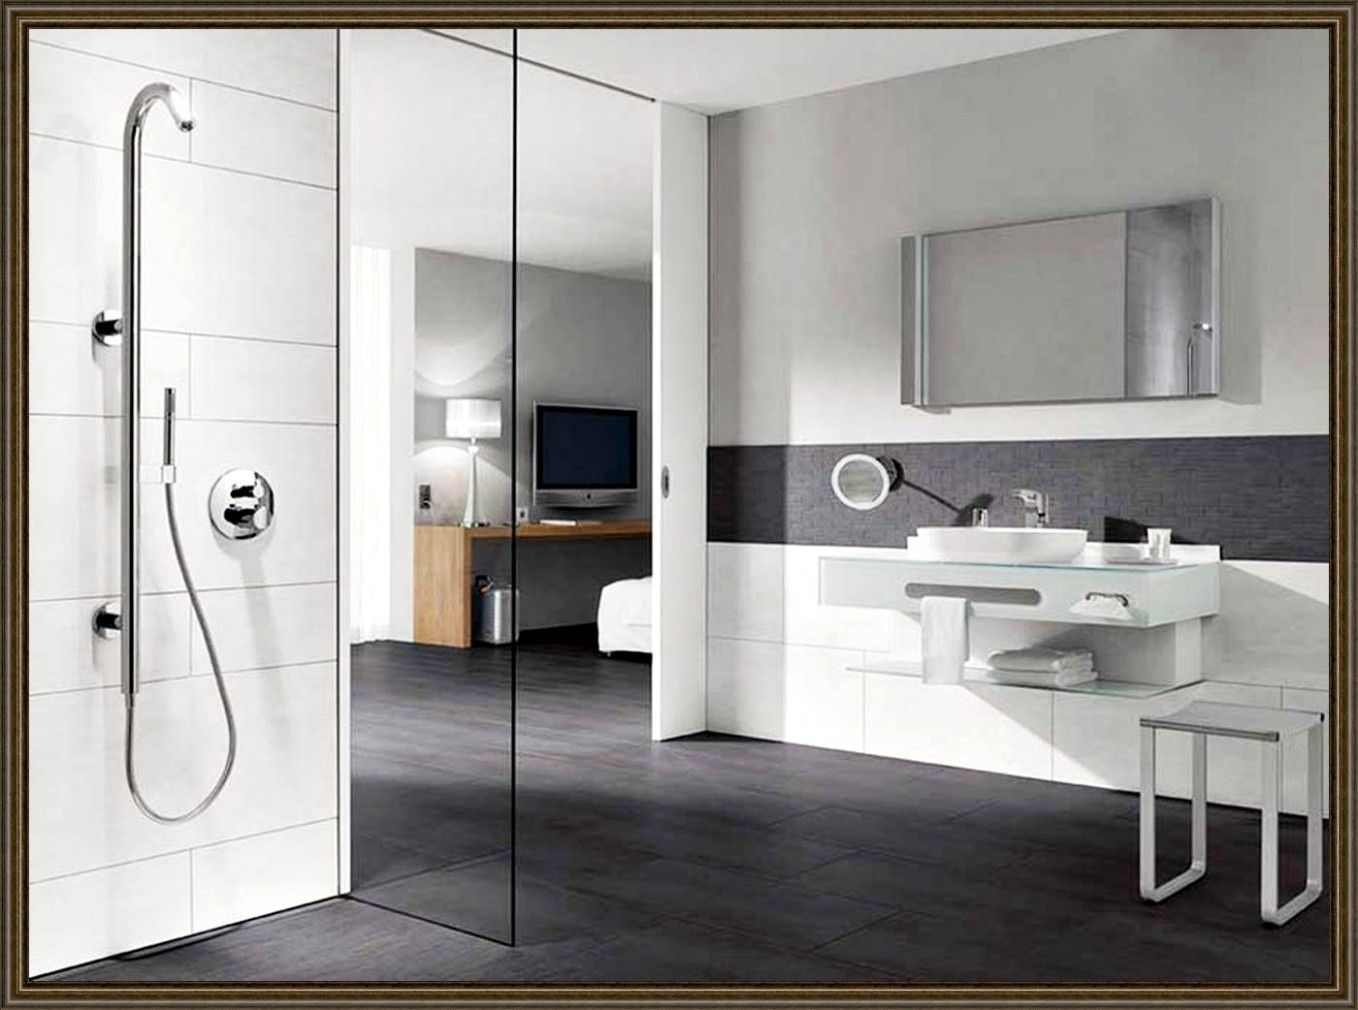 badezimmer auf kleinem raum ostseesuche com. Black Bedroom Furniture Sets. Home Design Ideas